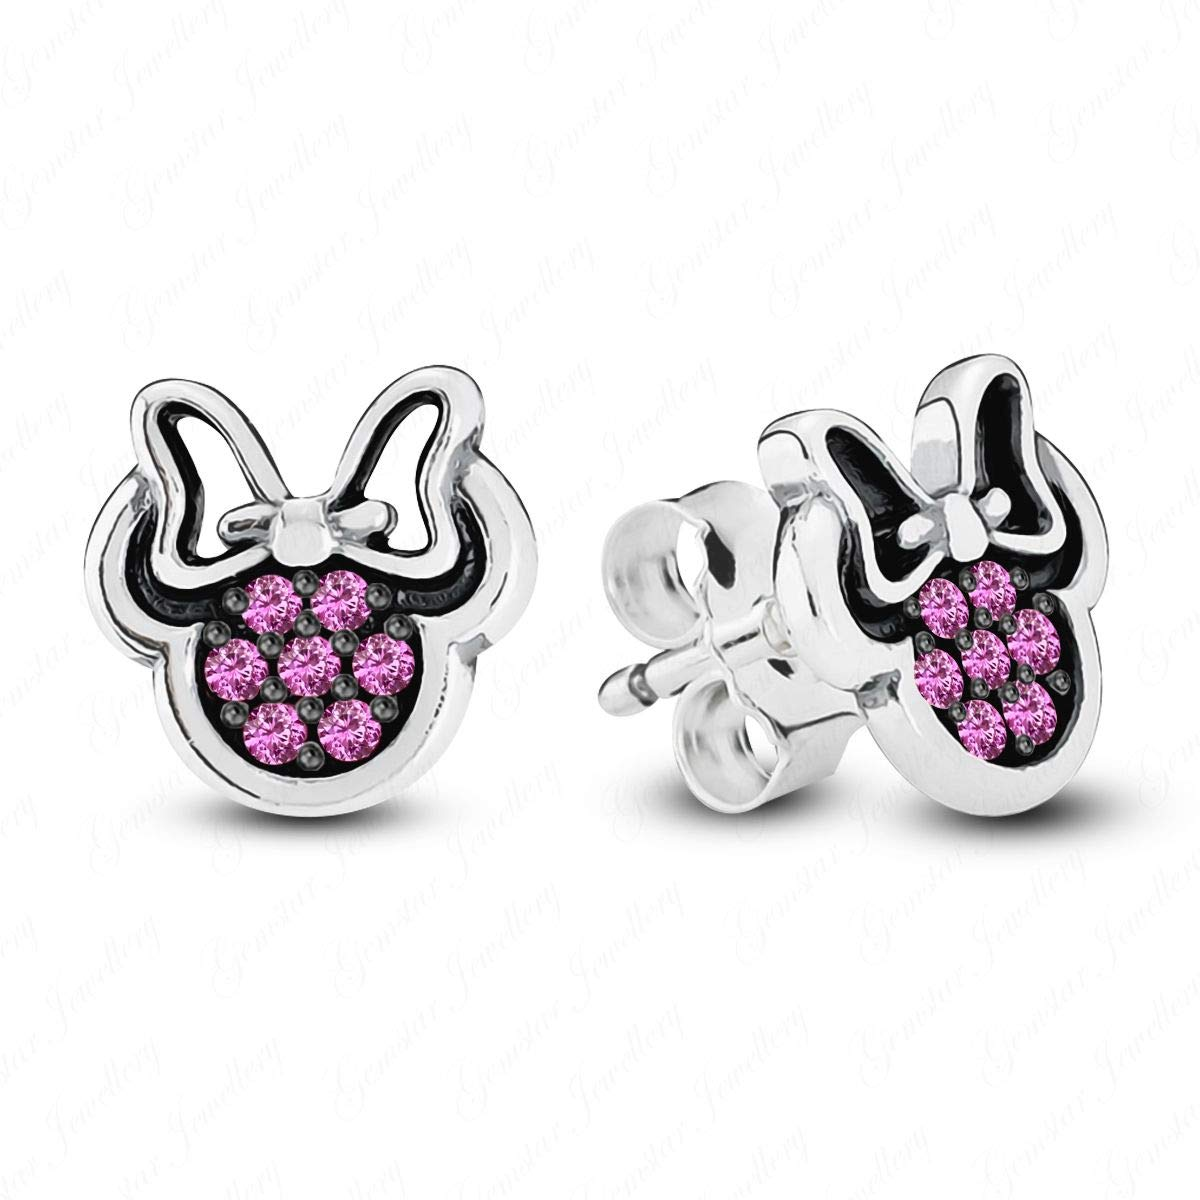 Gemstar Jewellery 18K White & Black Gold Finish Round Pink Sapphire Minnie Mouse Icon Disney Earrings